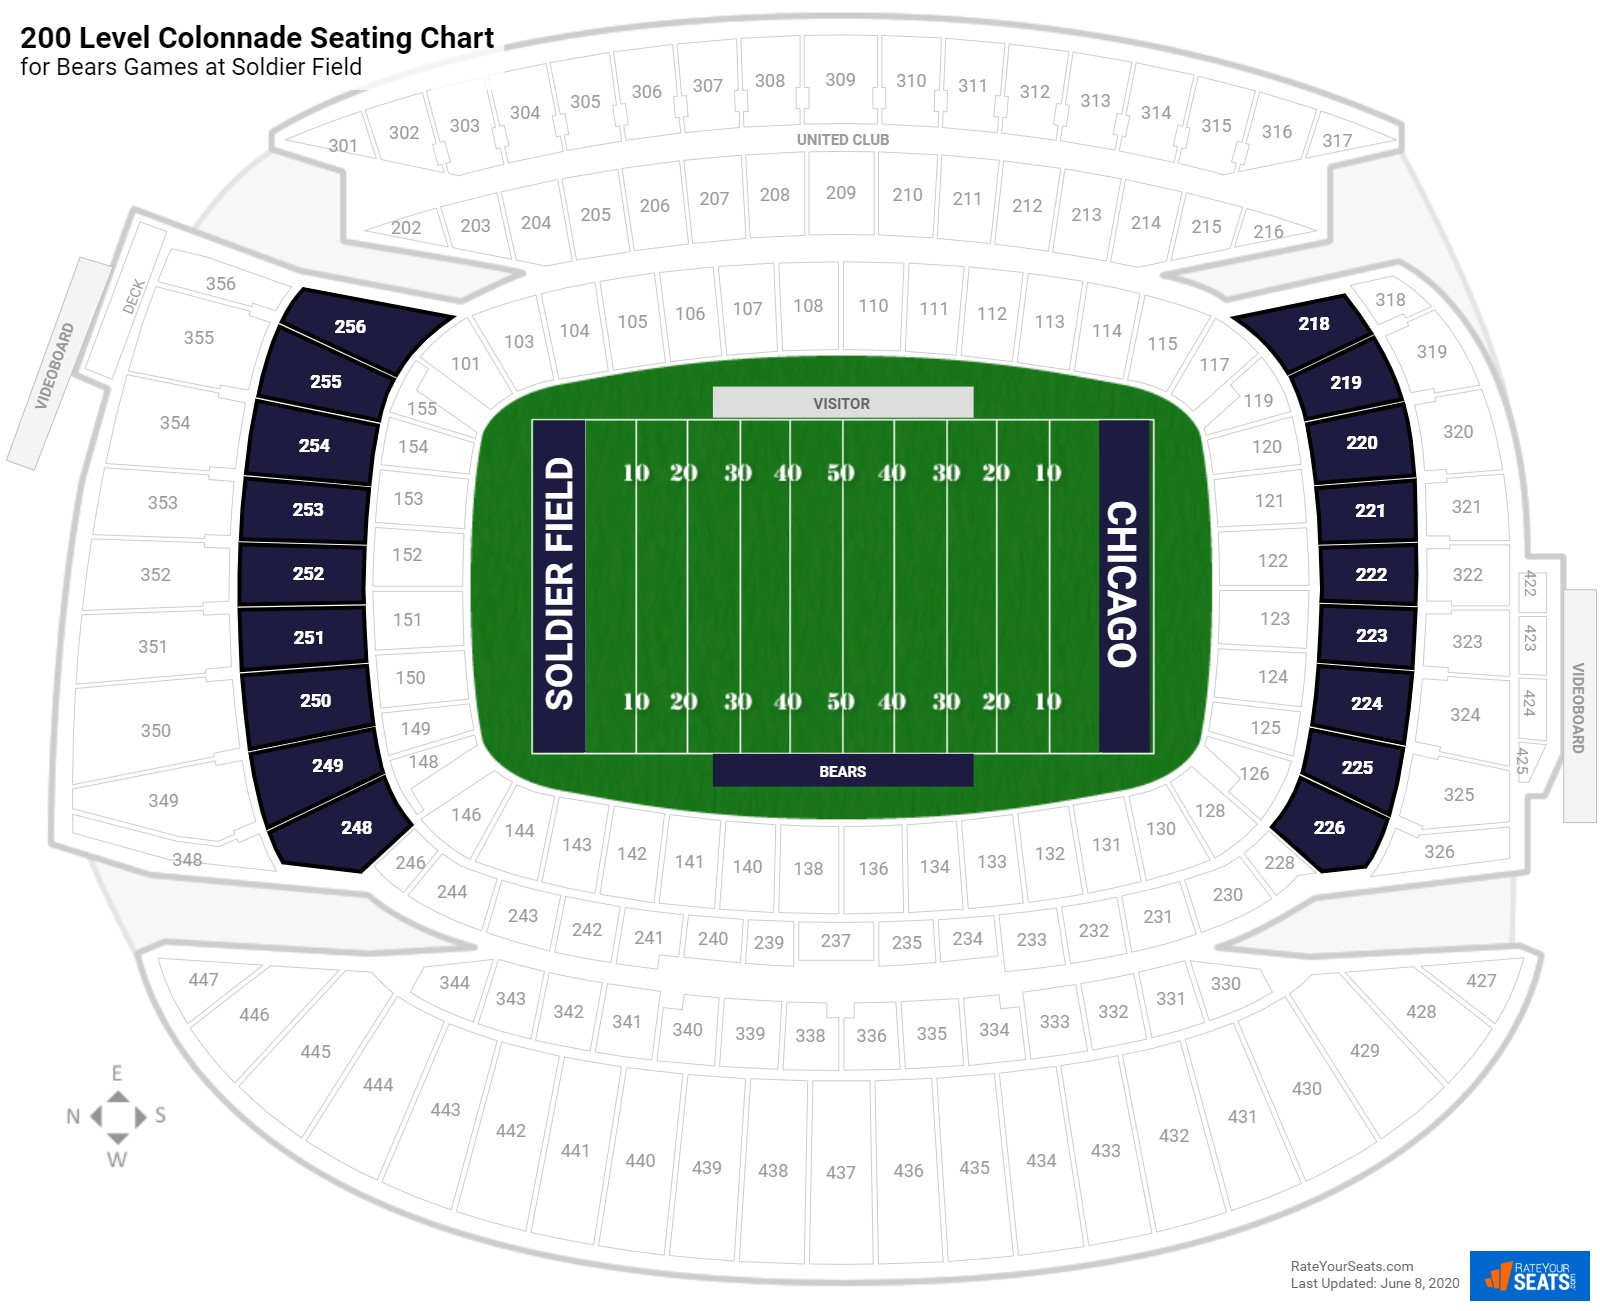 Soldier Field 200 Level Colonnade seating chart